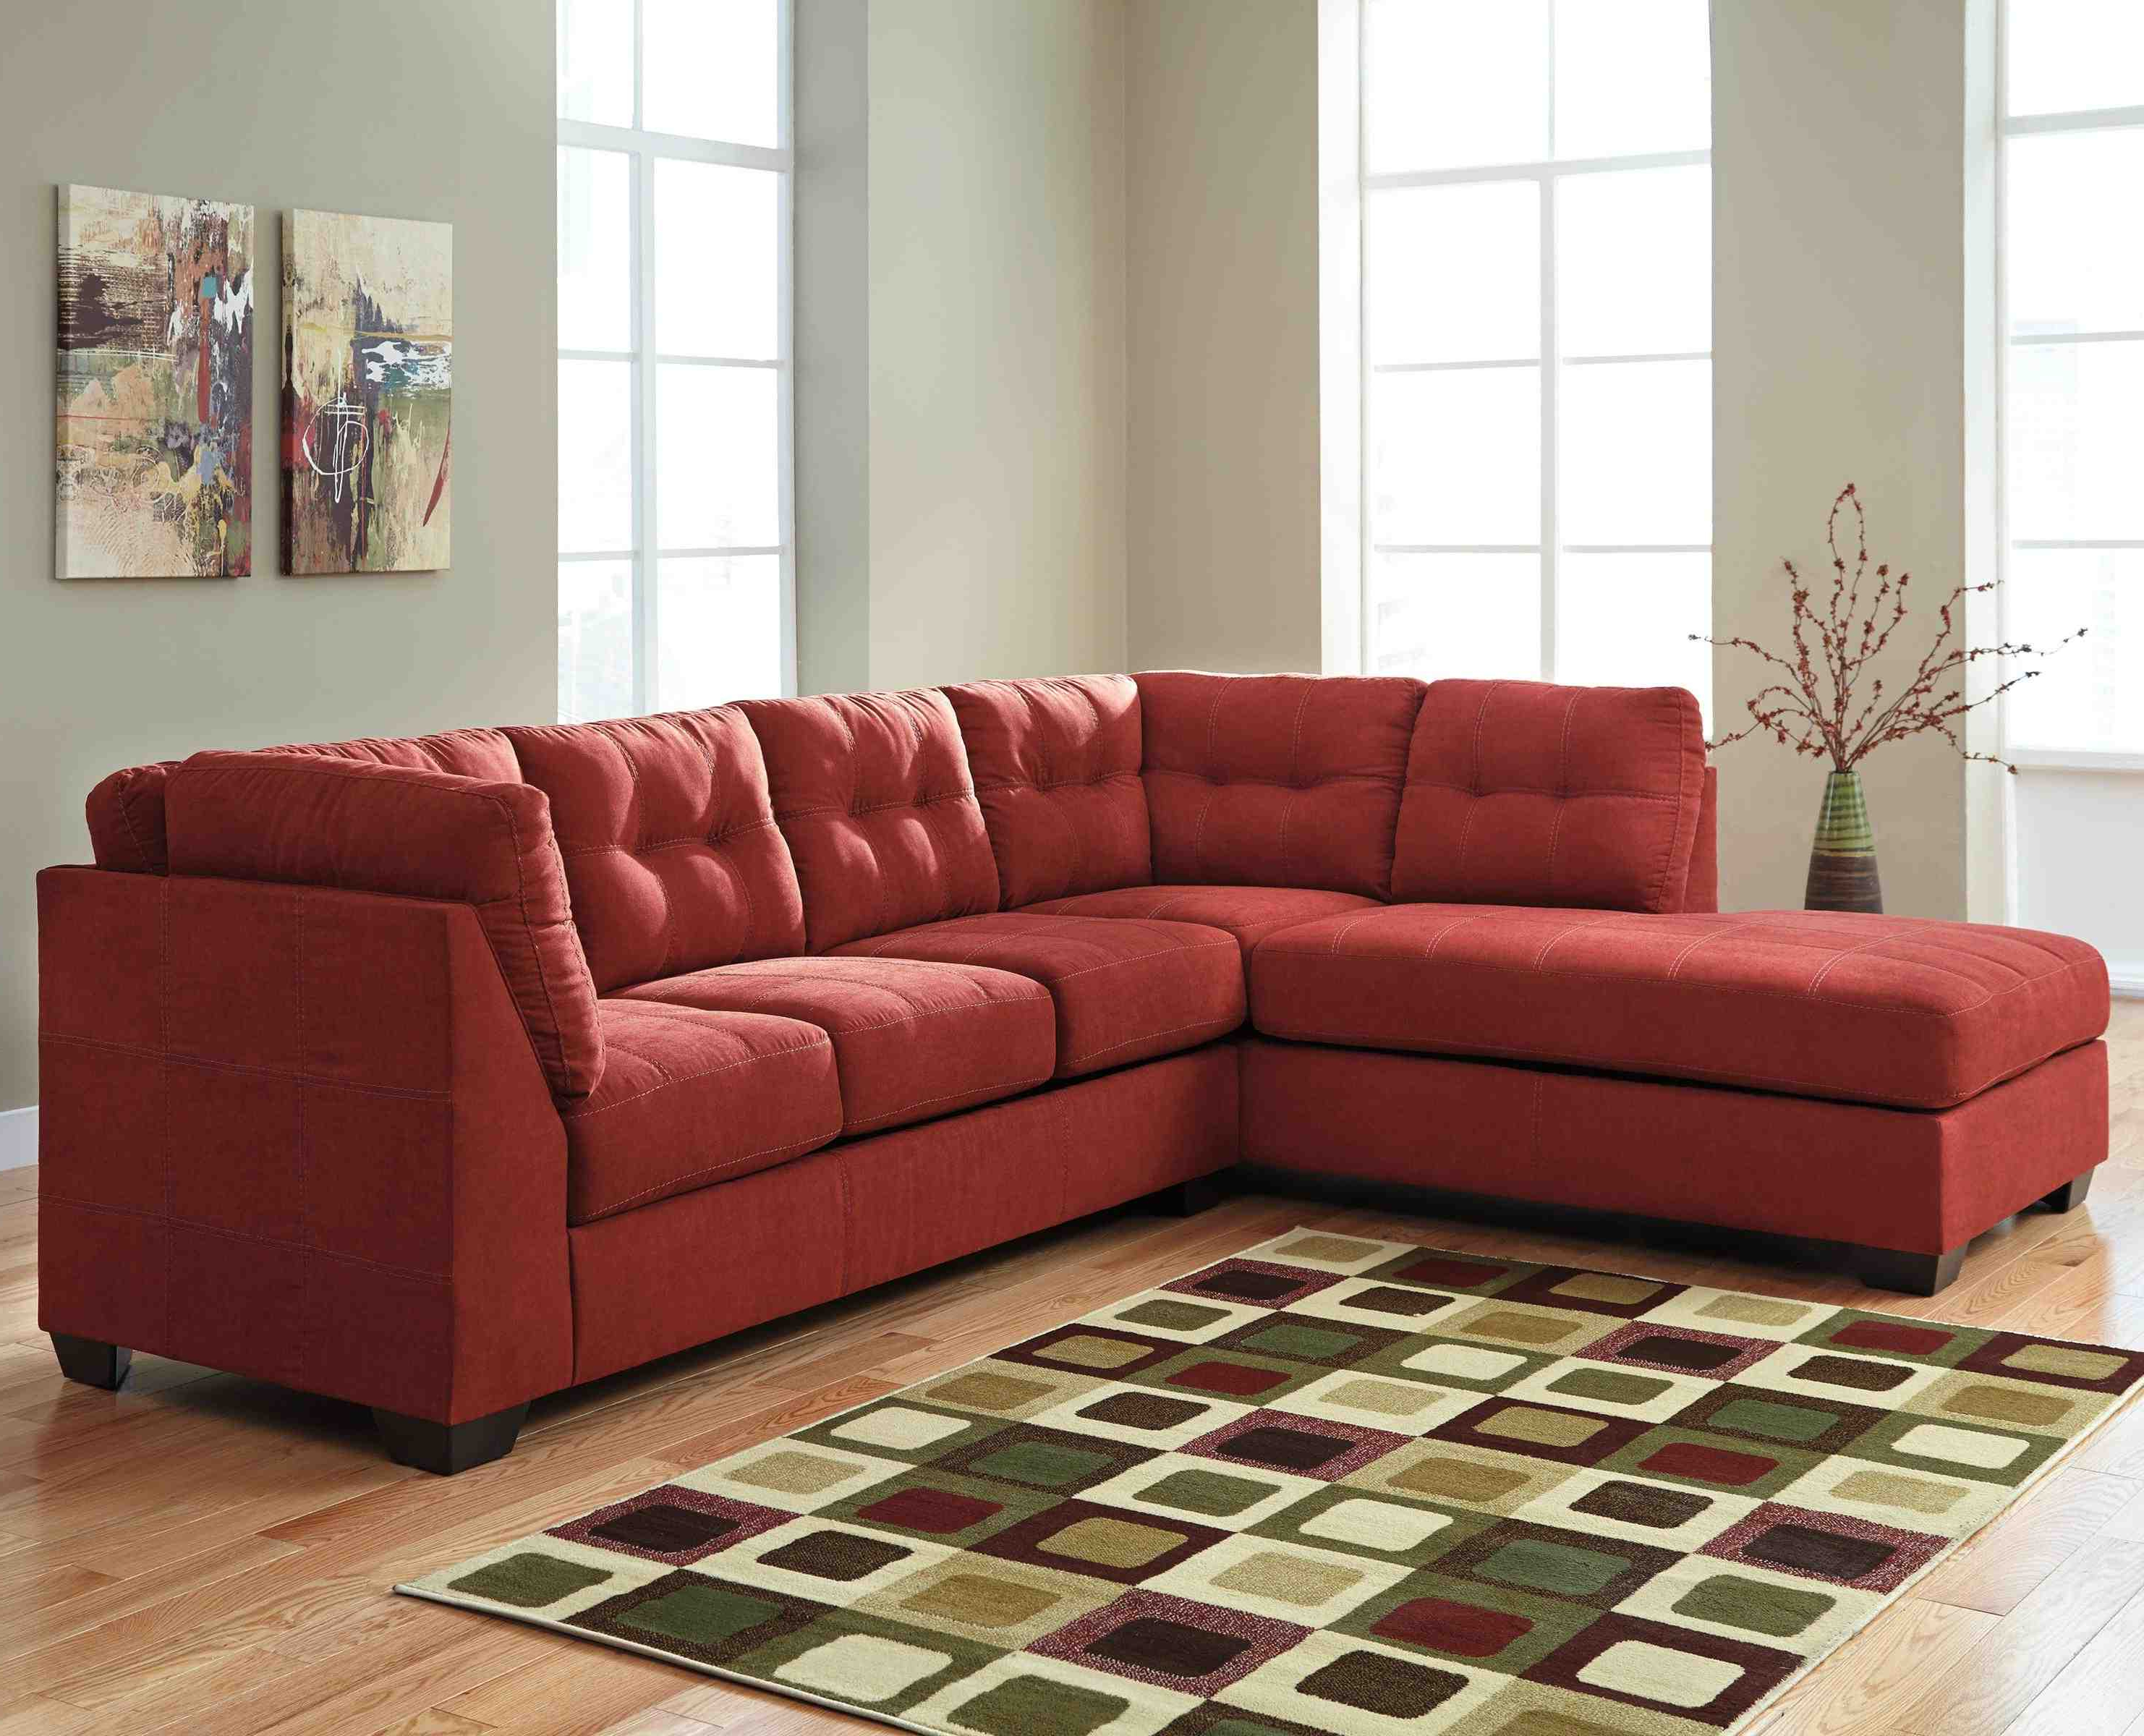 Delano 2 Piece Sectionals With Raf Oversized Chaise With Most Current Delano 2 Piece Sectional W/laf Oversized Chaise Living Spaces (Gallery 13 of 20)